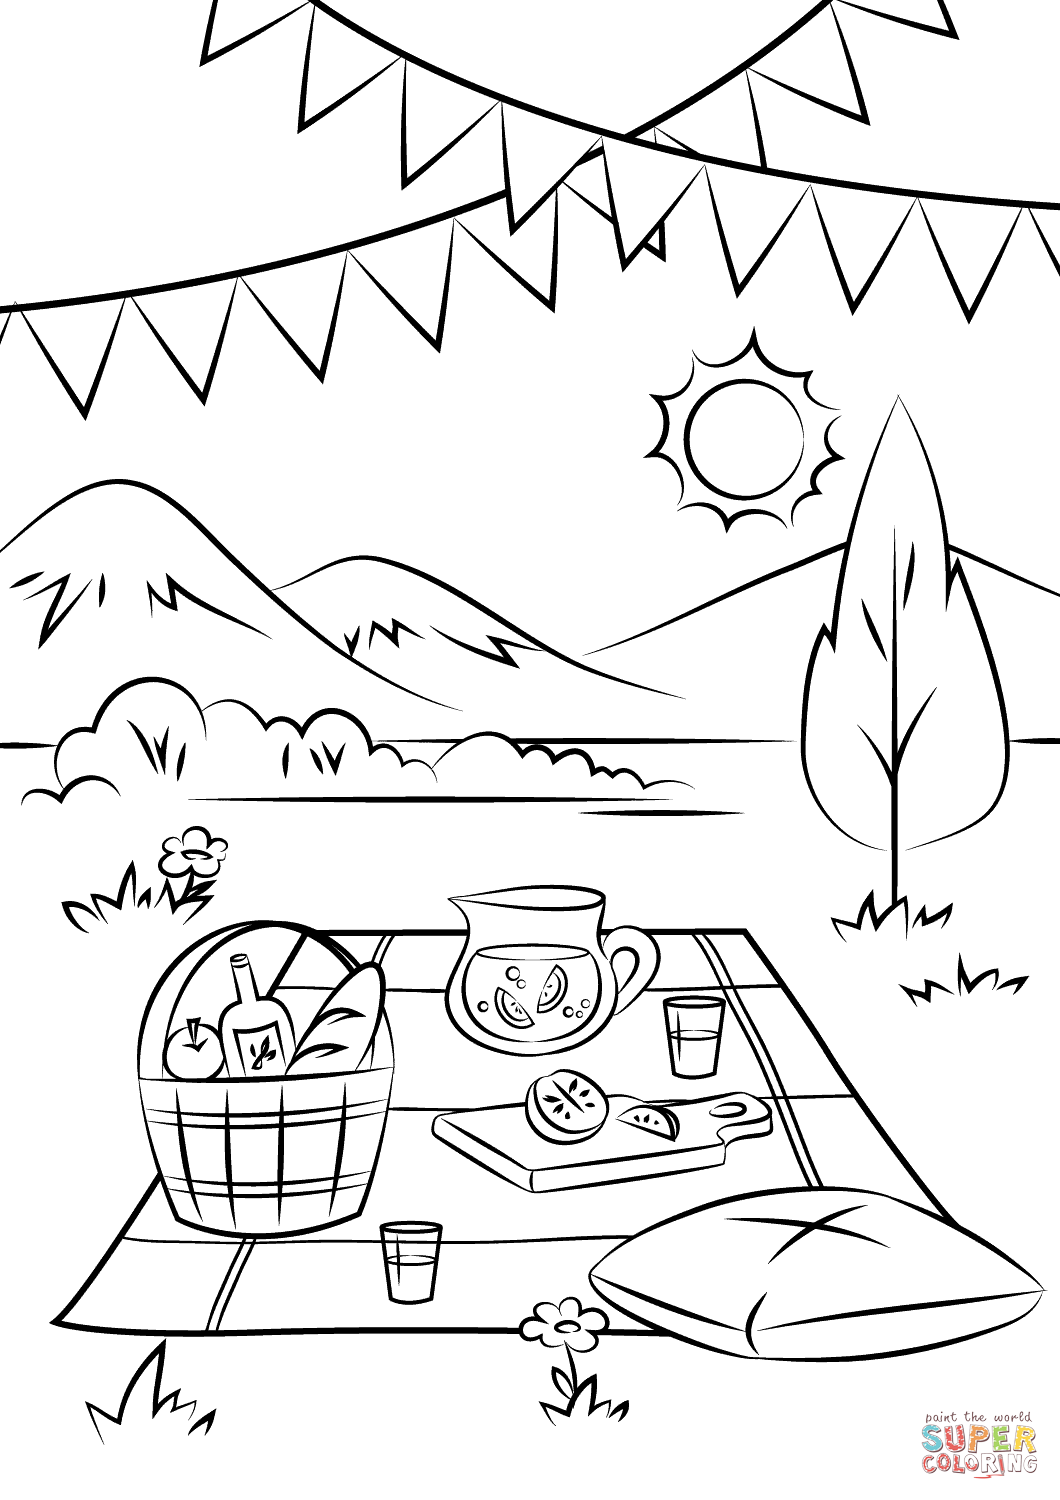 1060x1500 Picnic Scene Coloring Page Free Printable Coloring Pages